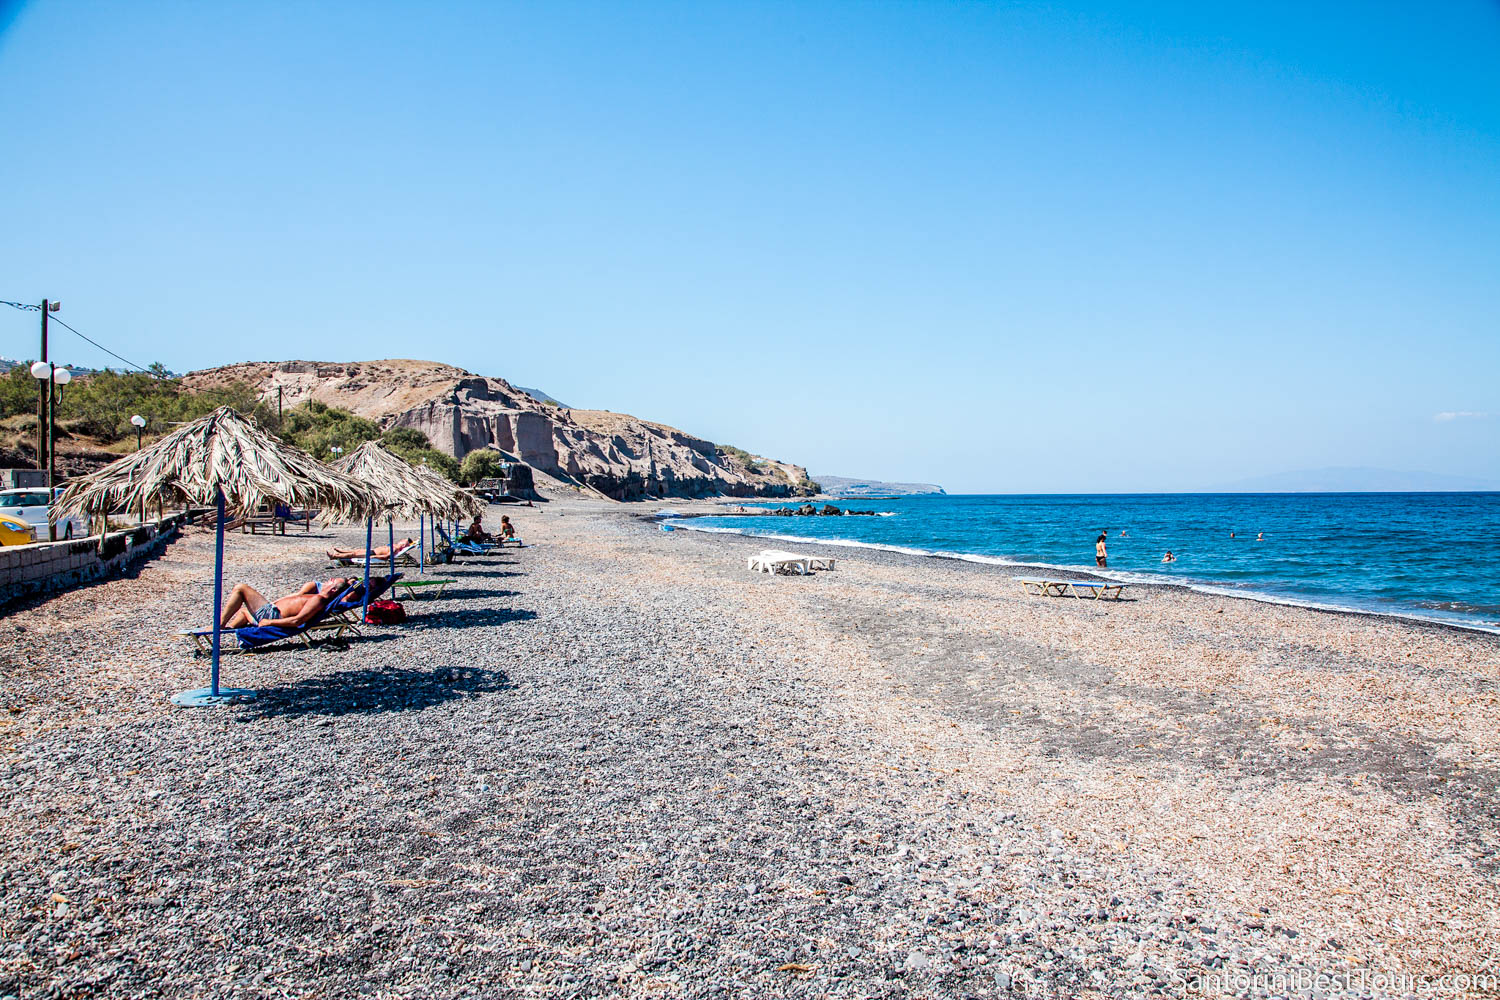 Vourvoulos beach in Santorini, Greece